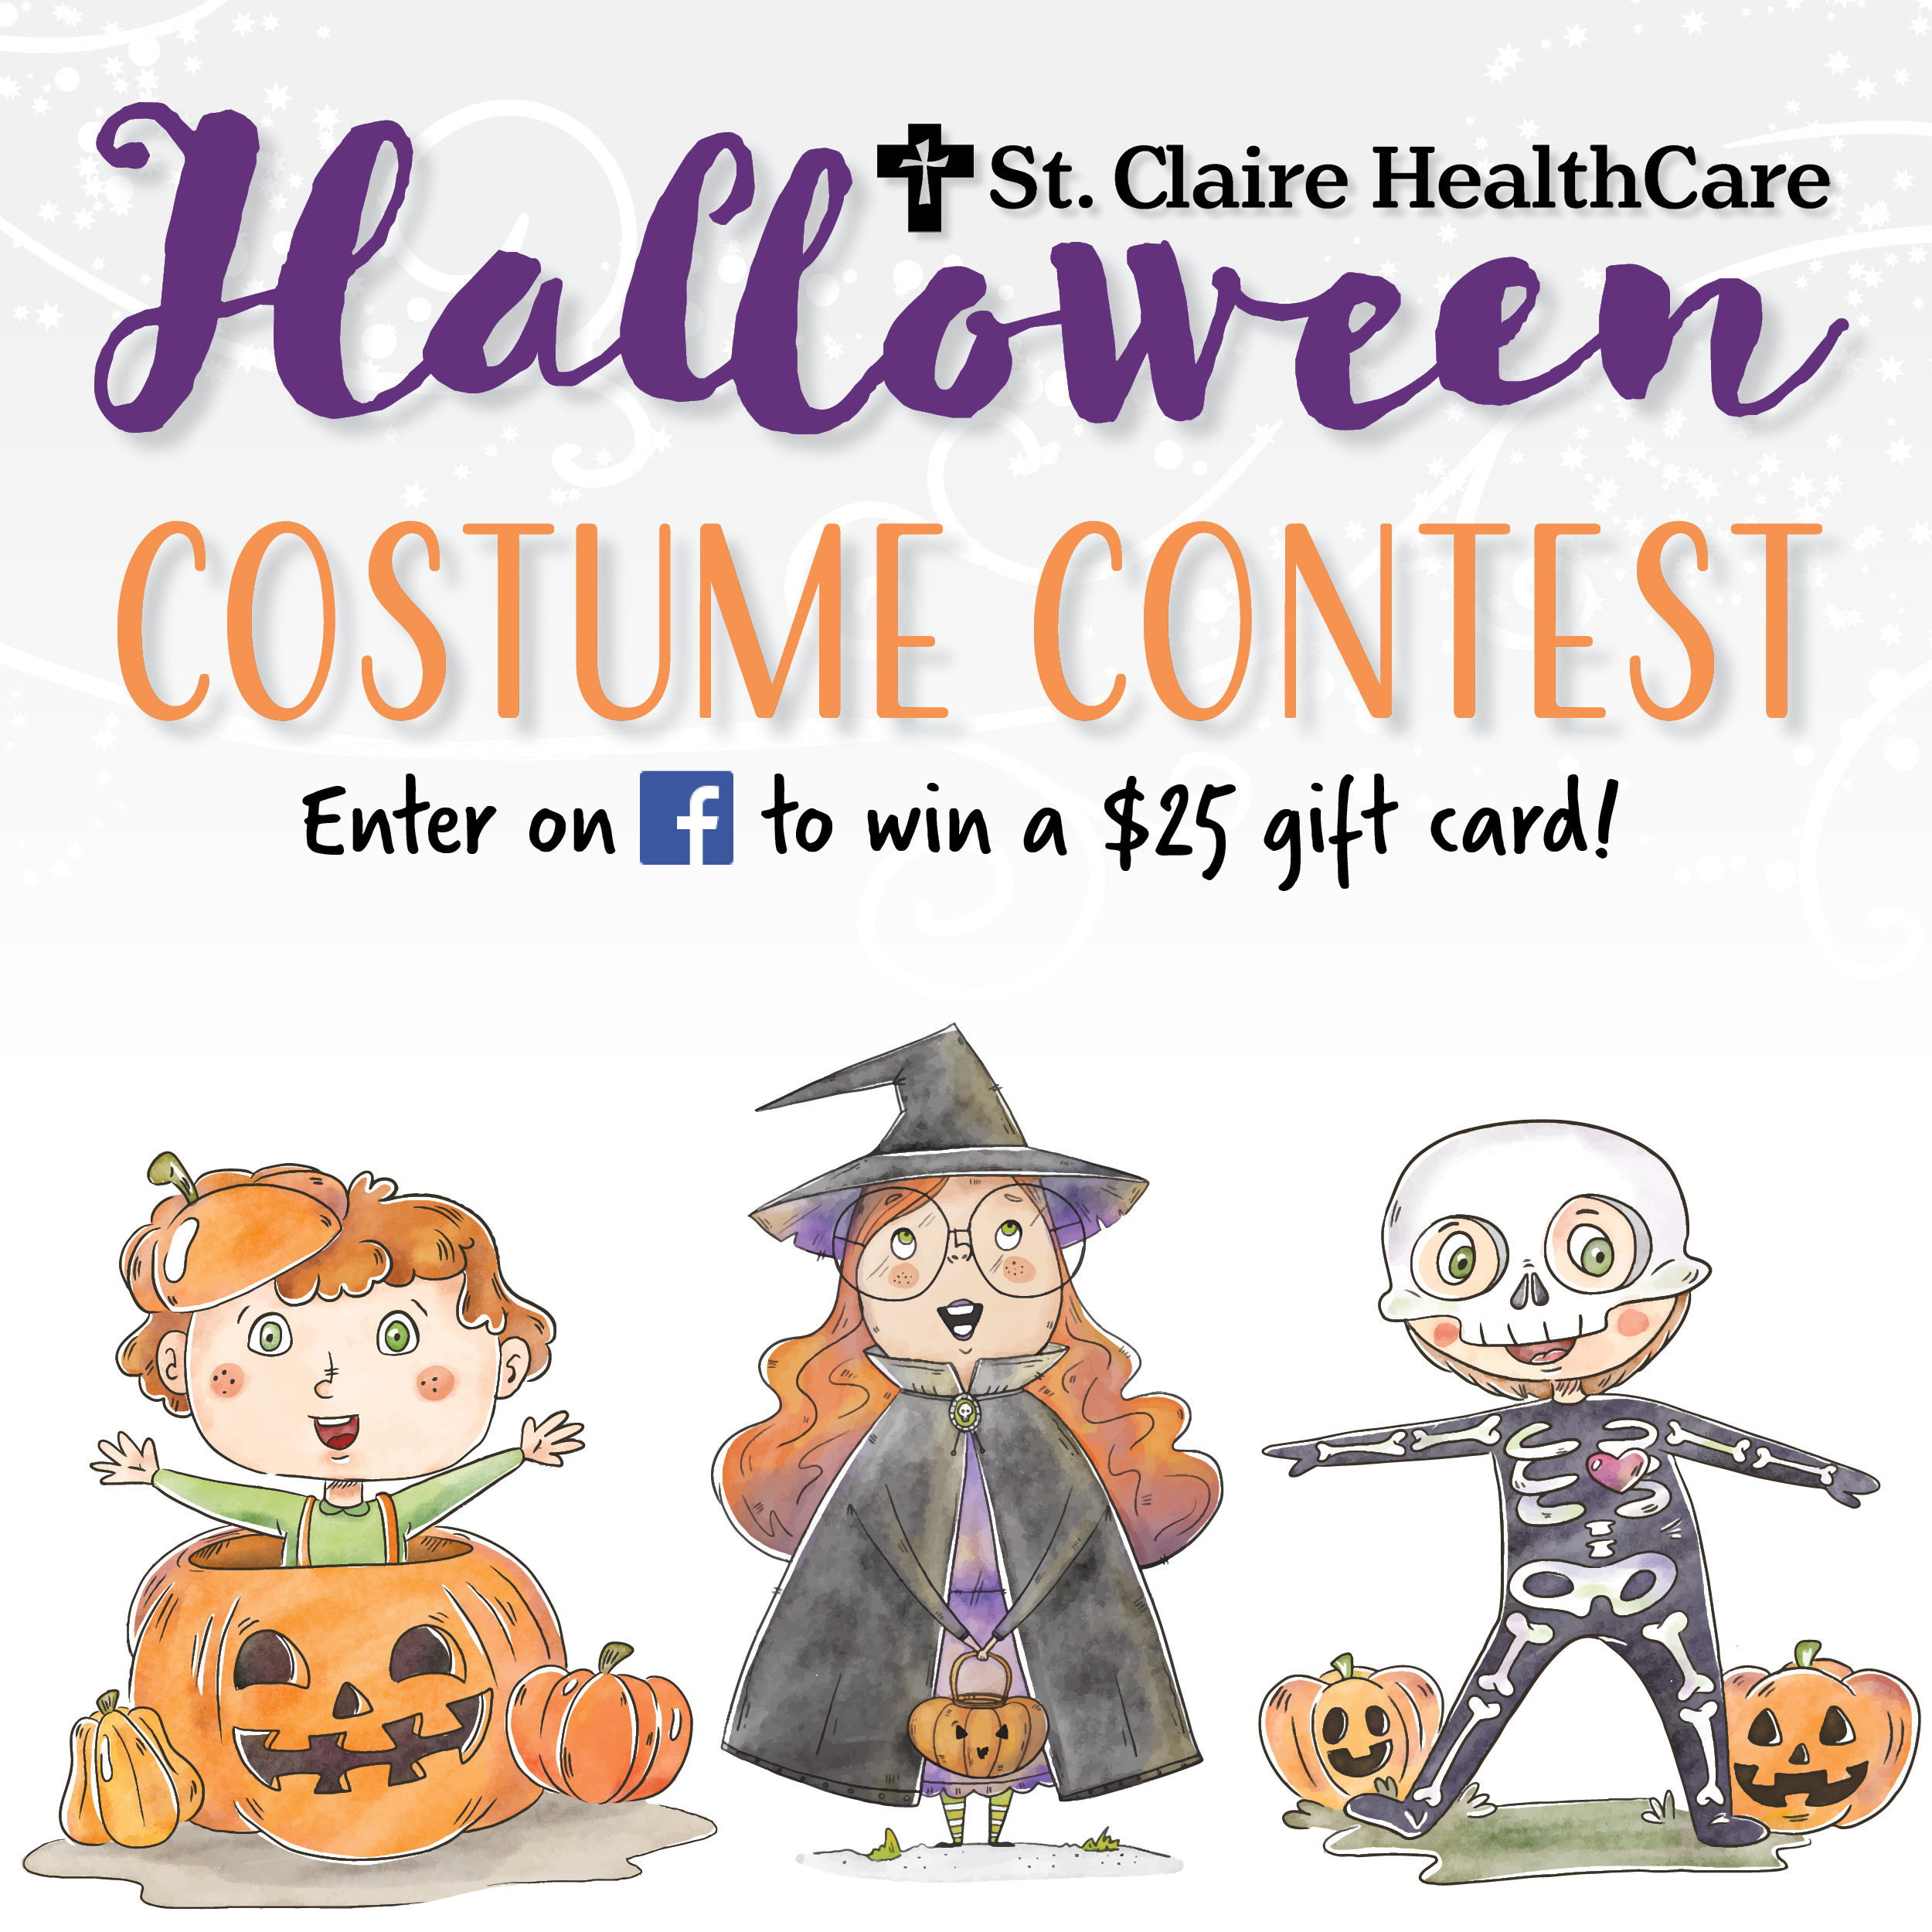 calling all costume cuties! it's time for our annual facebook